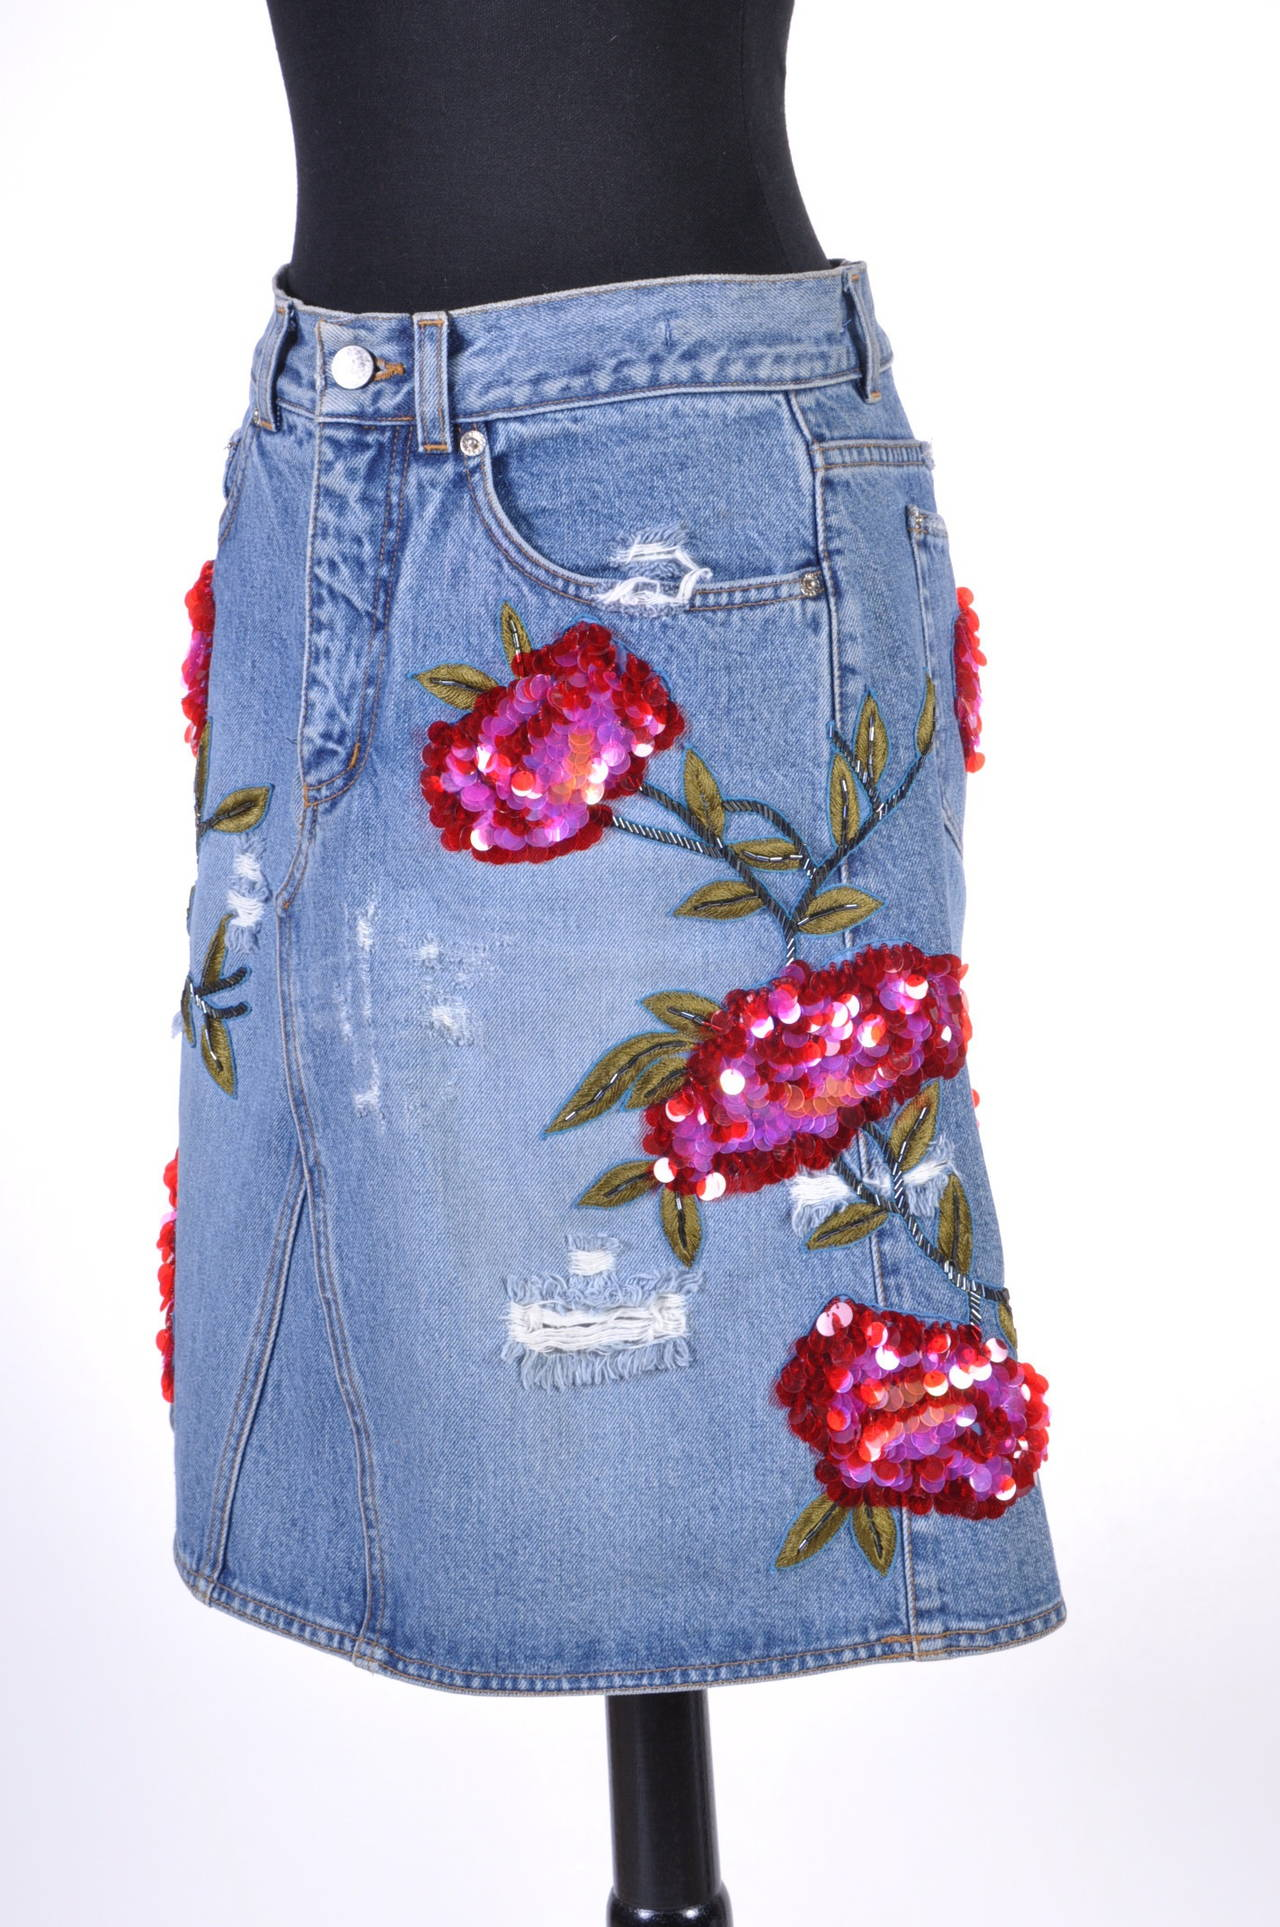 1999 TOM FORD for GUCCI RARE COLLECTOR'S BEADED DENIM SKIRT 3